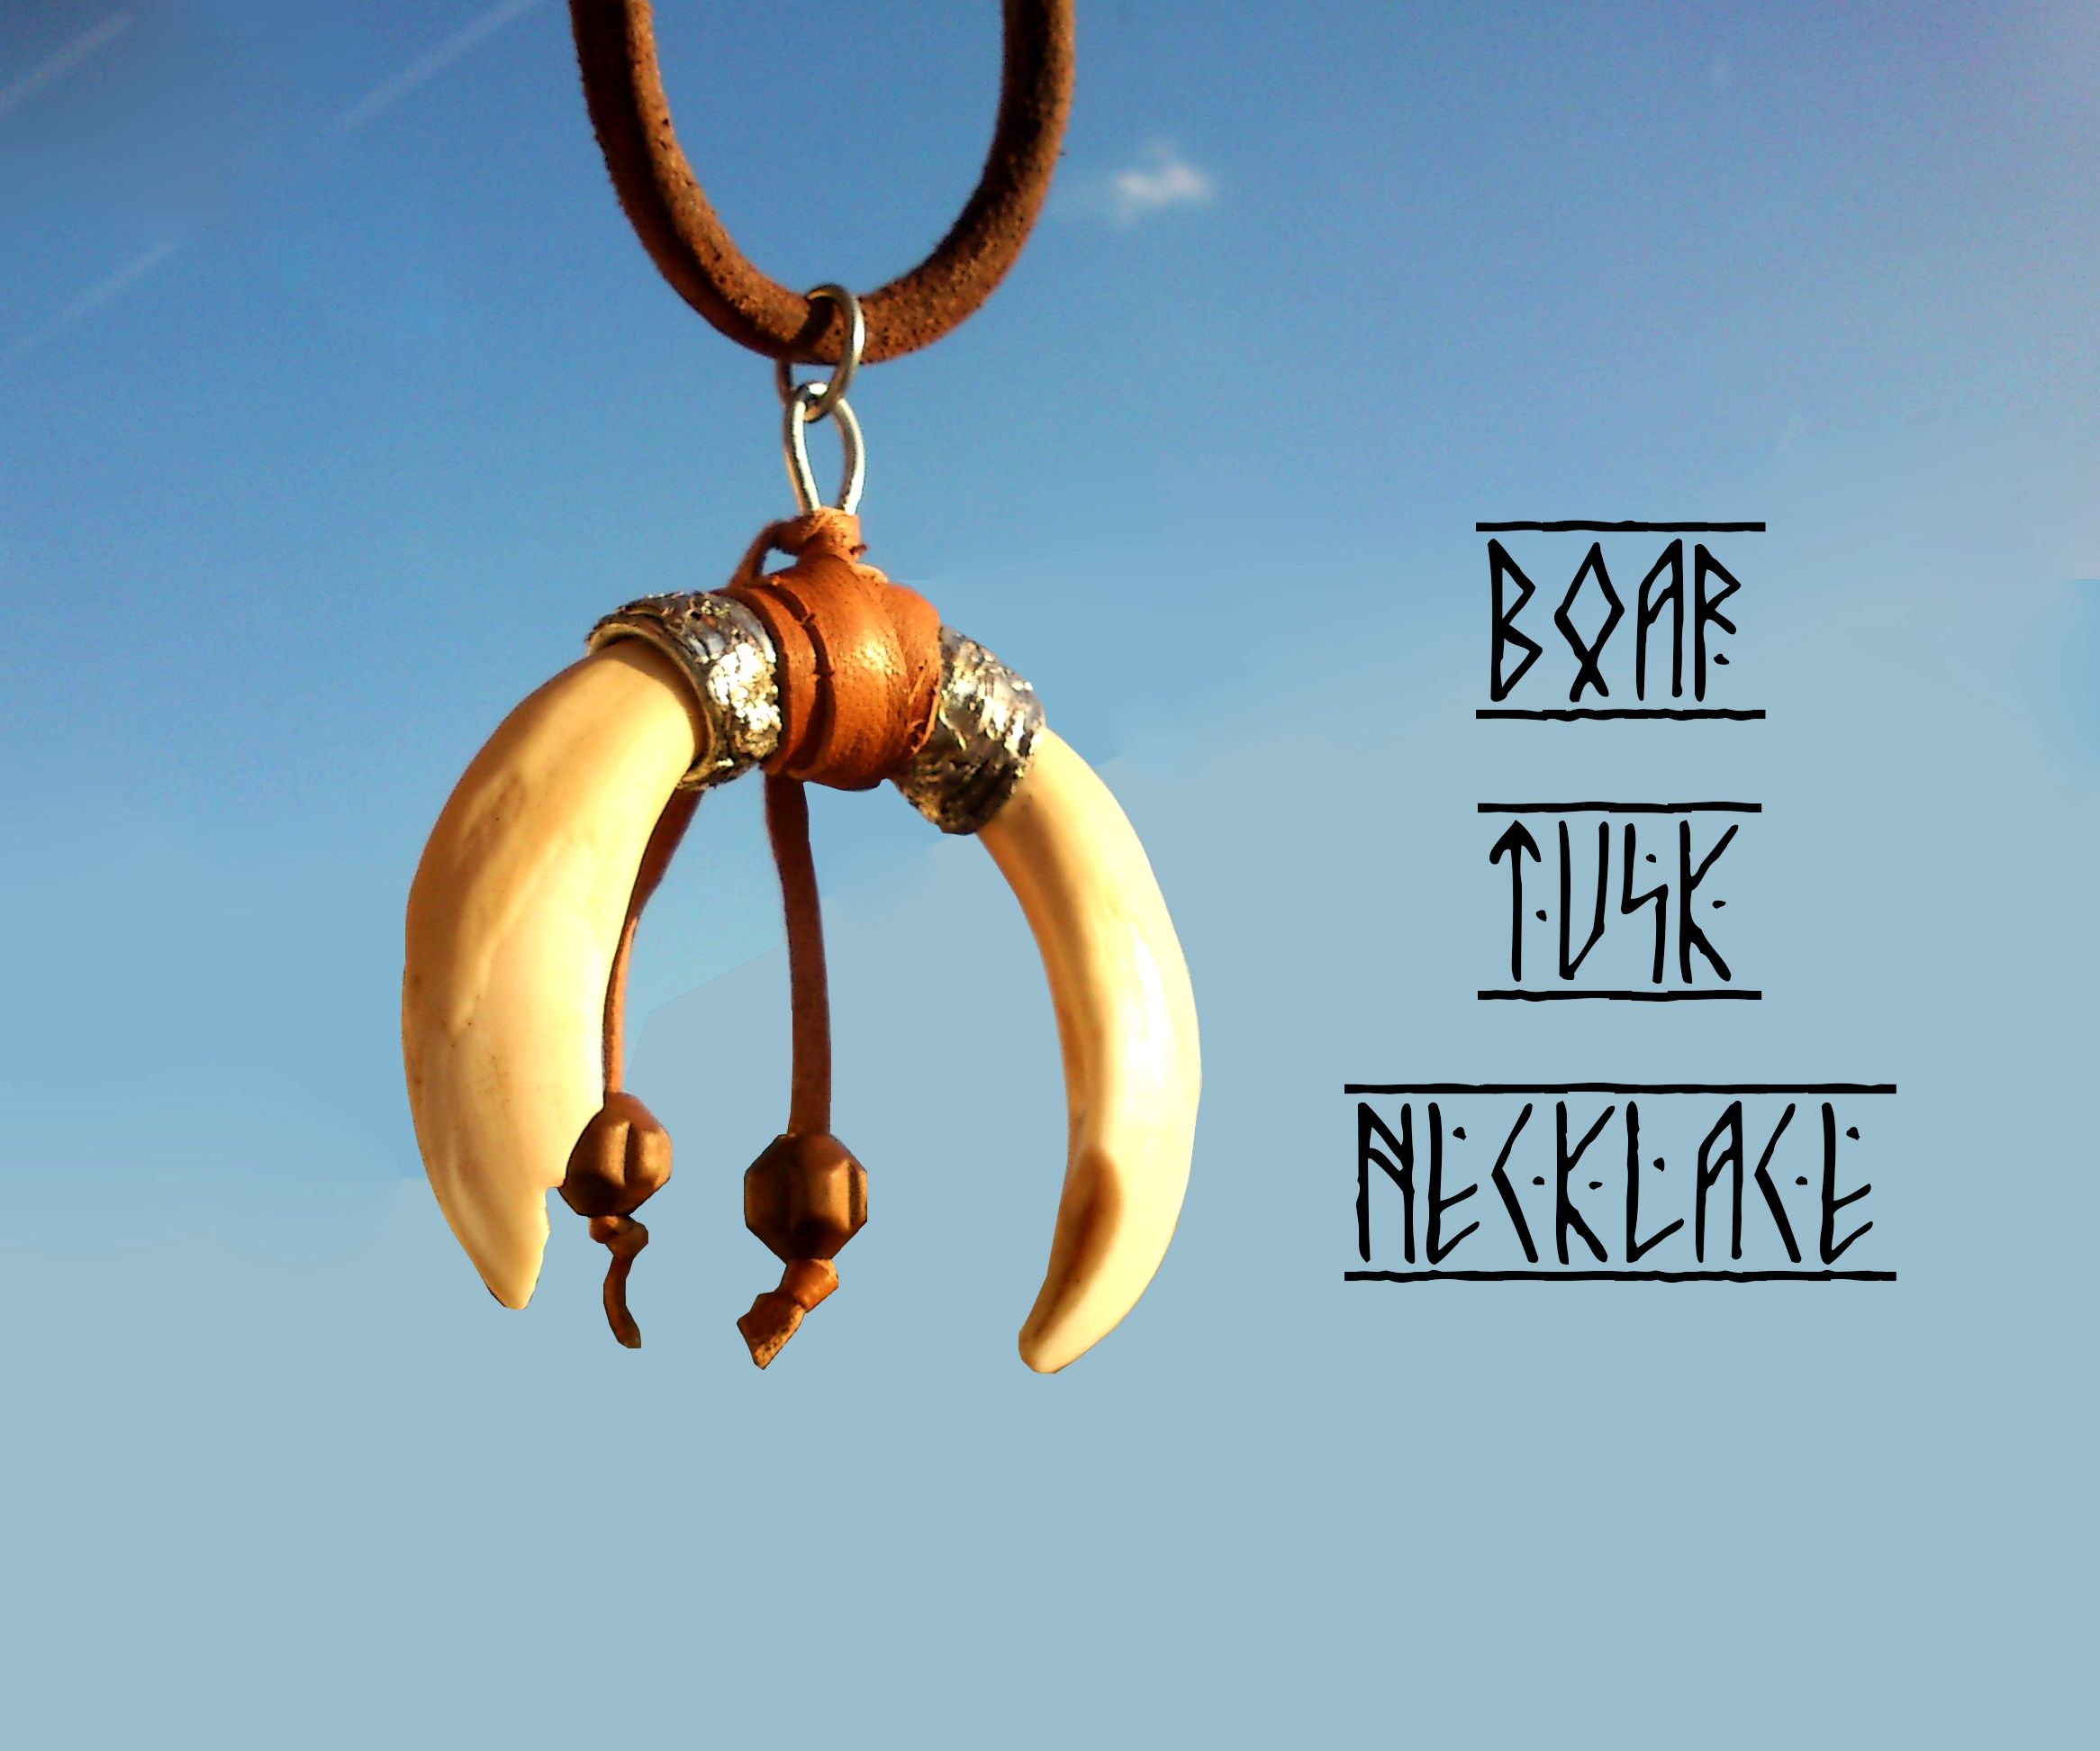 Boar tusk necklace